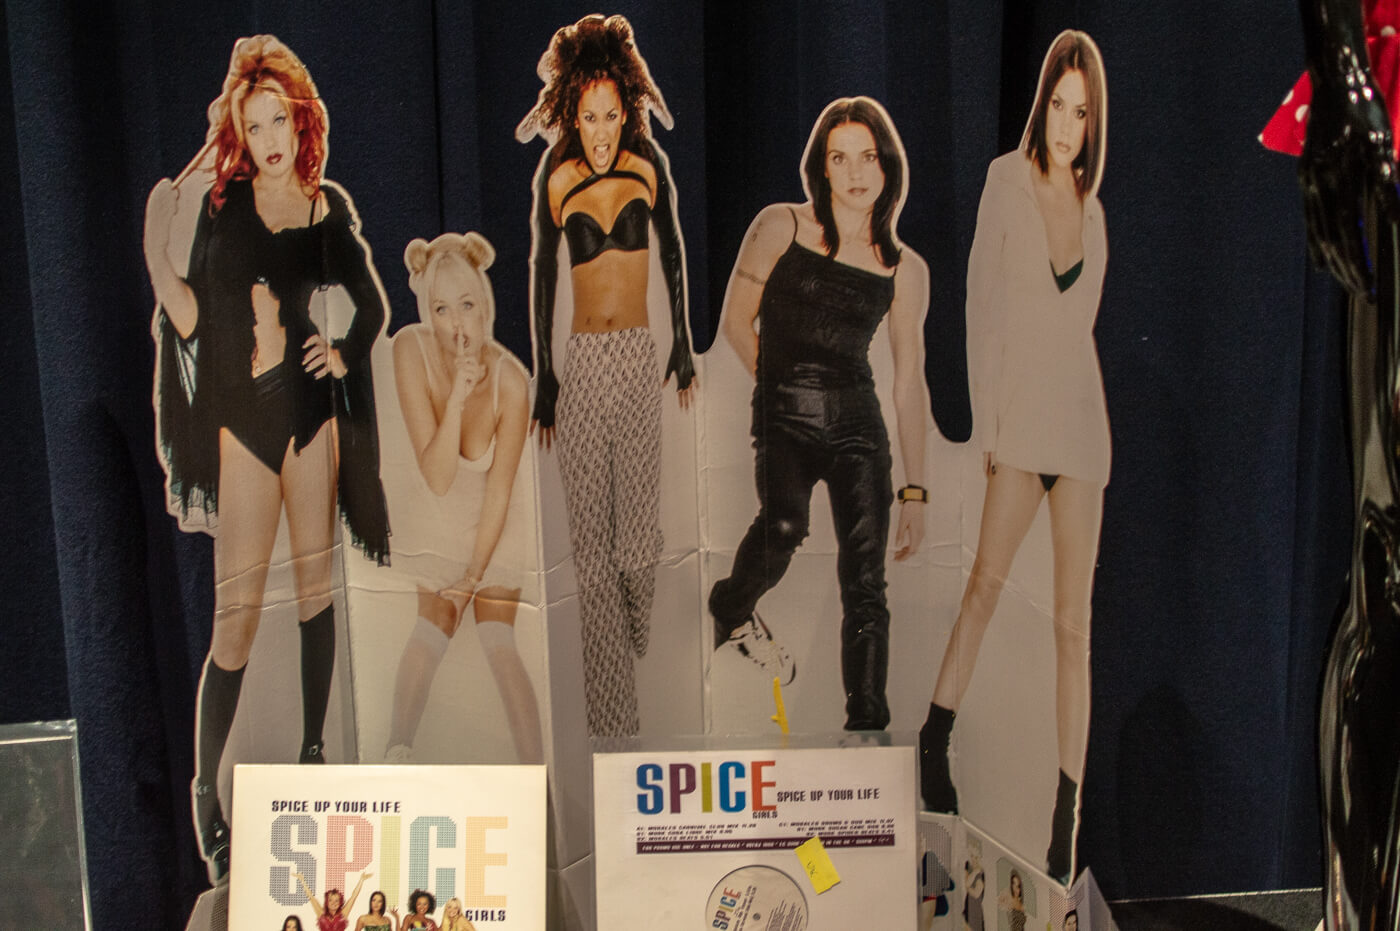 Spice Up Manchester launches at Manchester Central Convention Centre